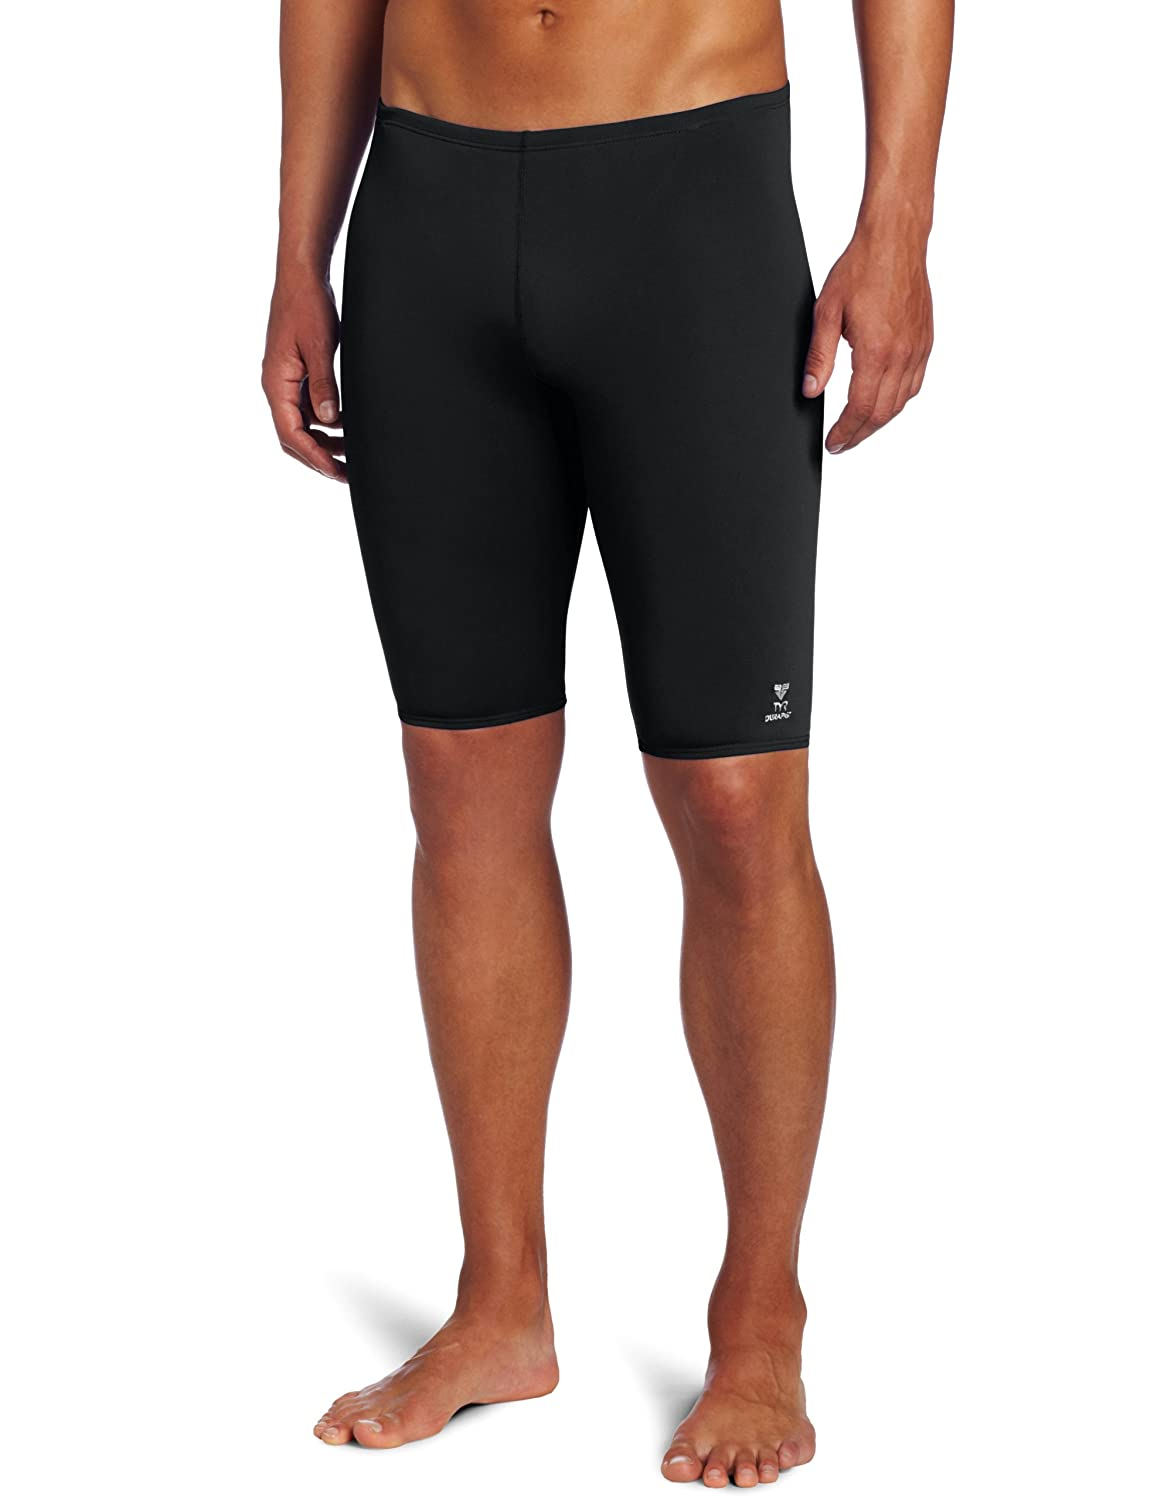 Amazon.com: Louis Garneau Tri Power Laser Men's Shorts: Sports ...